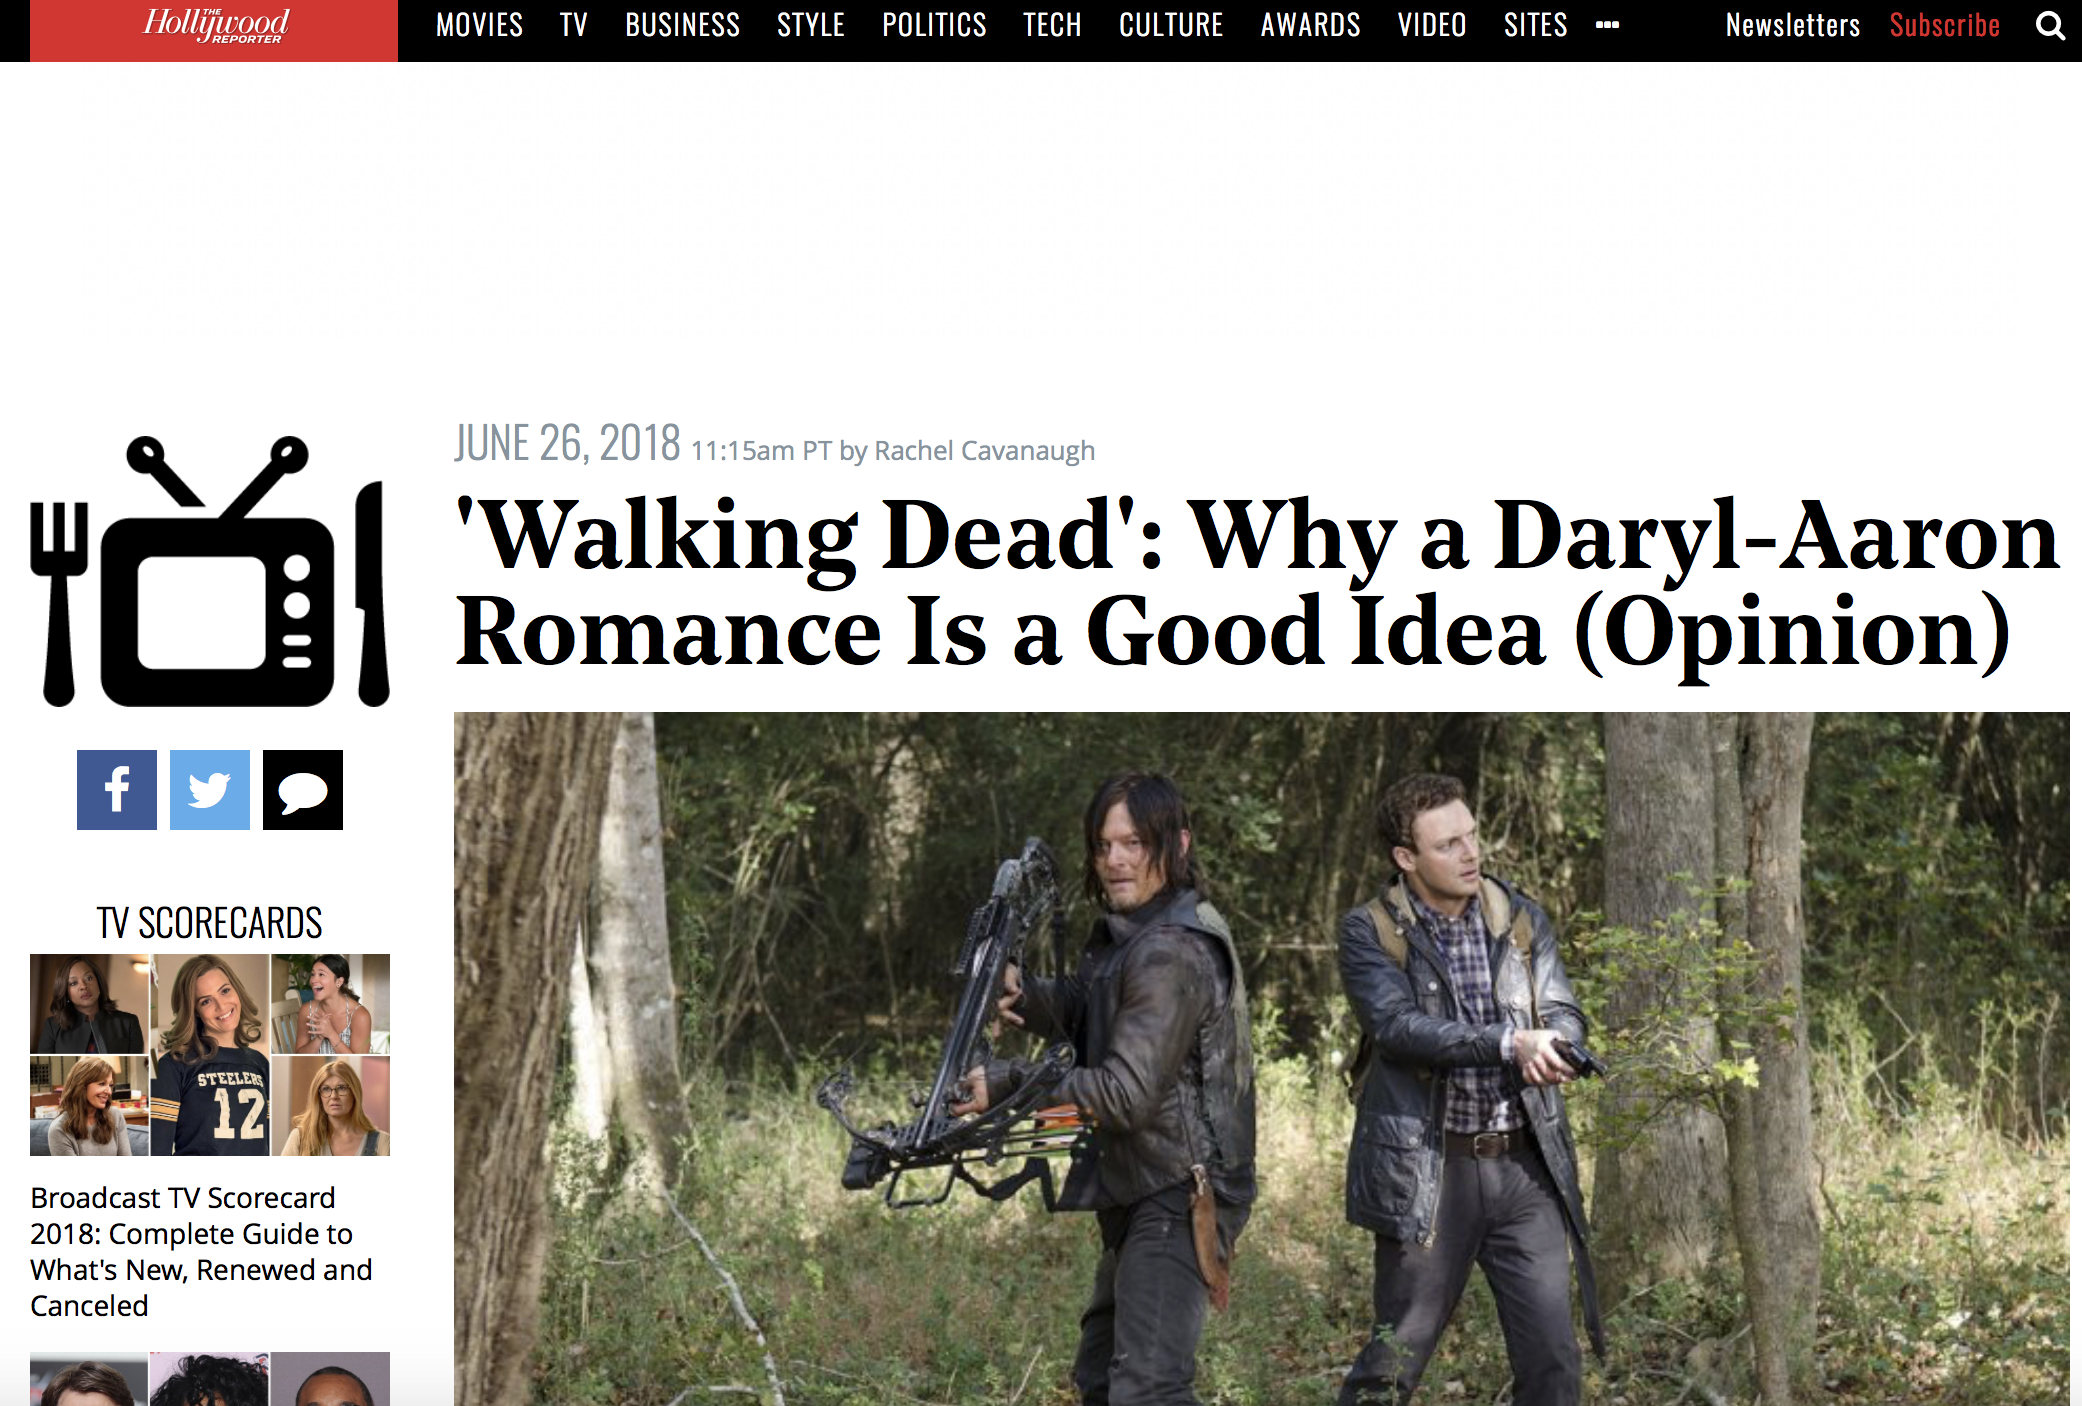 Walking Dead opinion piece on a Daryl and Aaron romance.